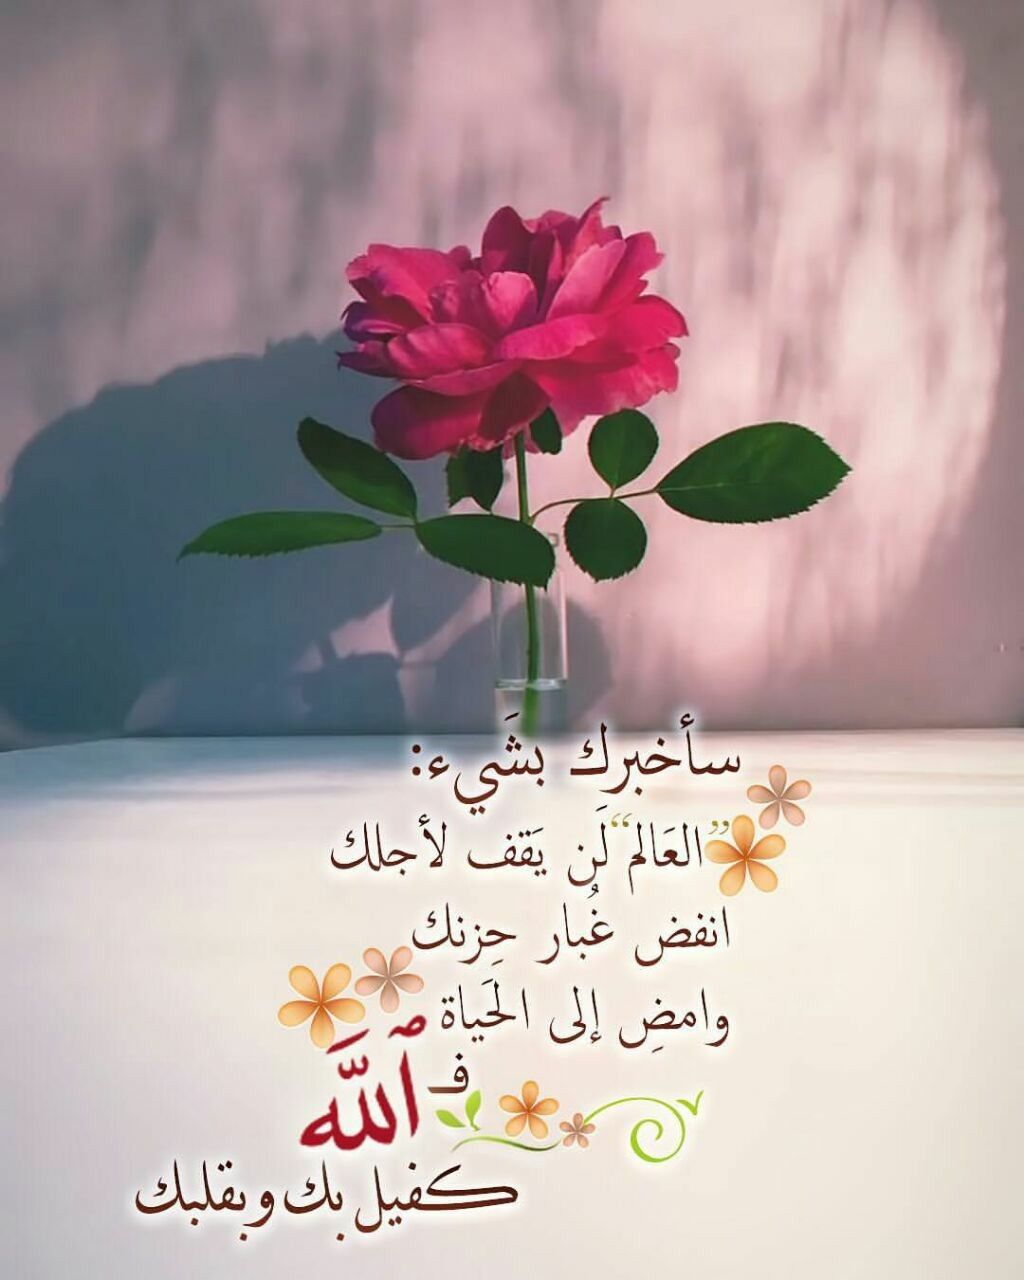 Pin By Hssin On حسا Islamic Pictures Autumn Inspiration Love Photos